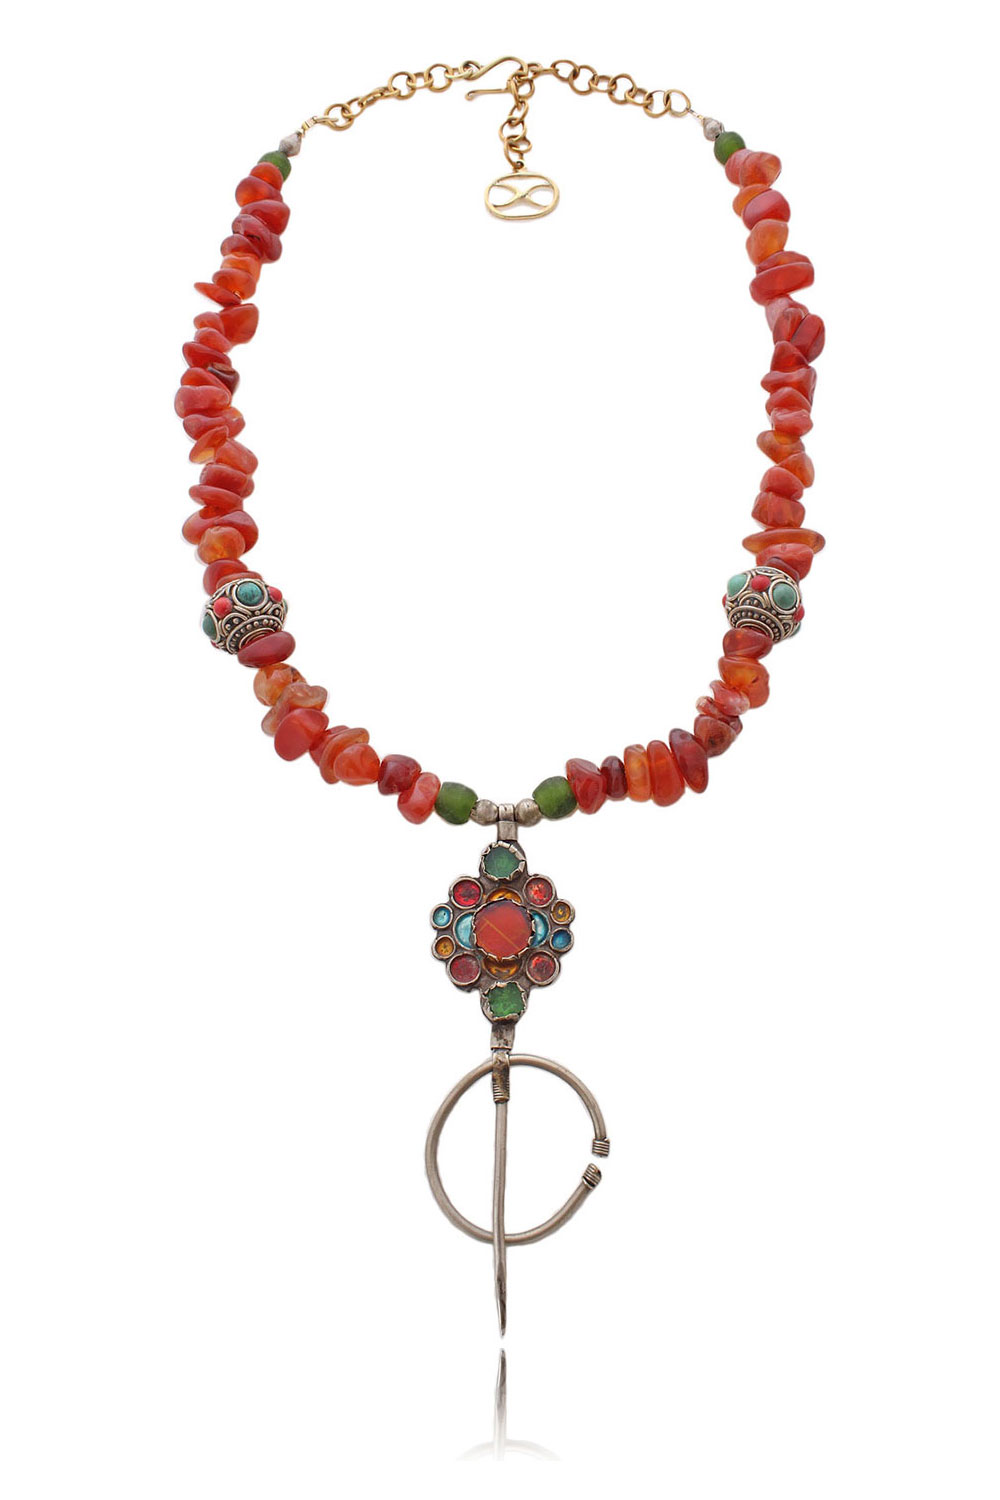 Zerlinda Antique Moroccan Fibula Necklace by SHIKHAZURI